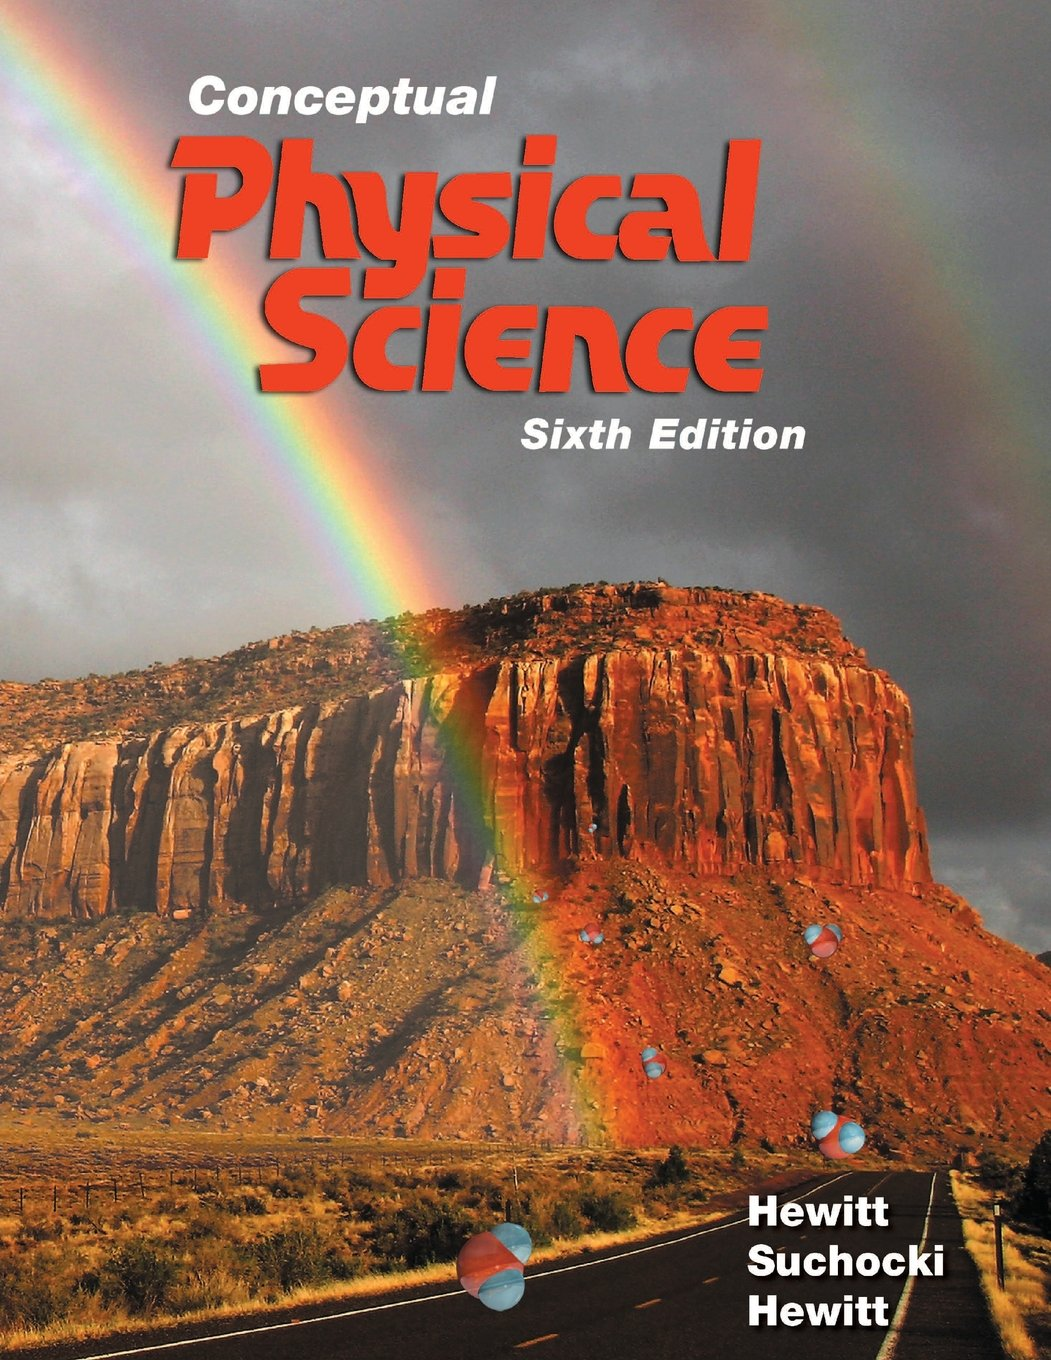 Conceptual Physical Science (6th Edition) by Pearson